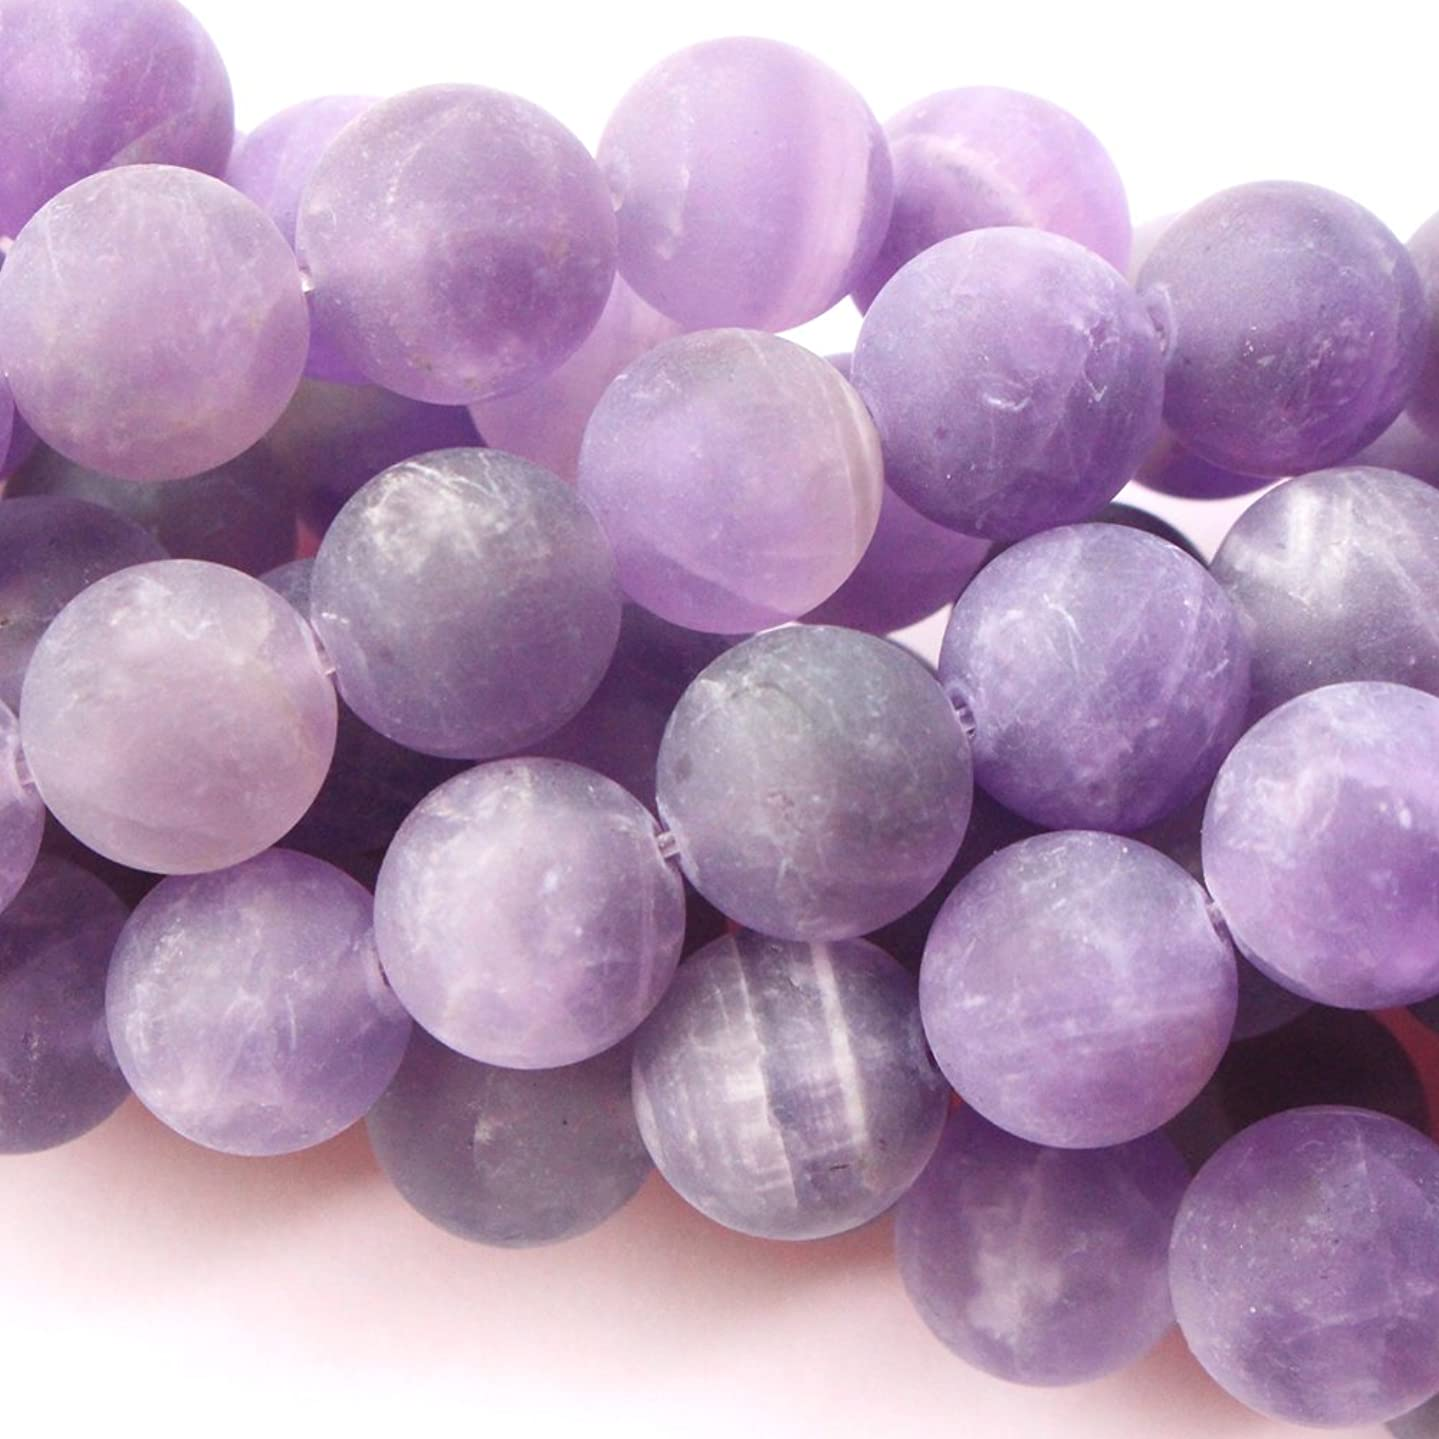 Natural Color Unpolished Matte Amethyst Round Gemstone Jewelry Making Loose Beads (10mm)